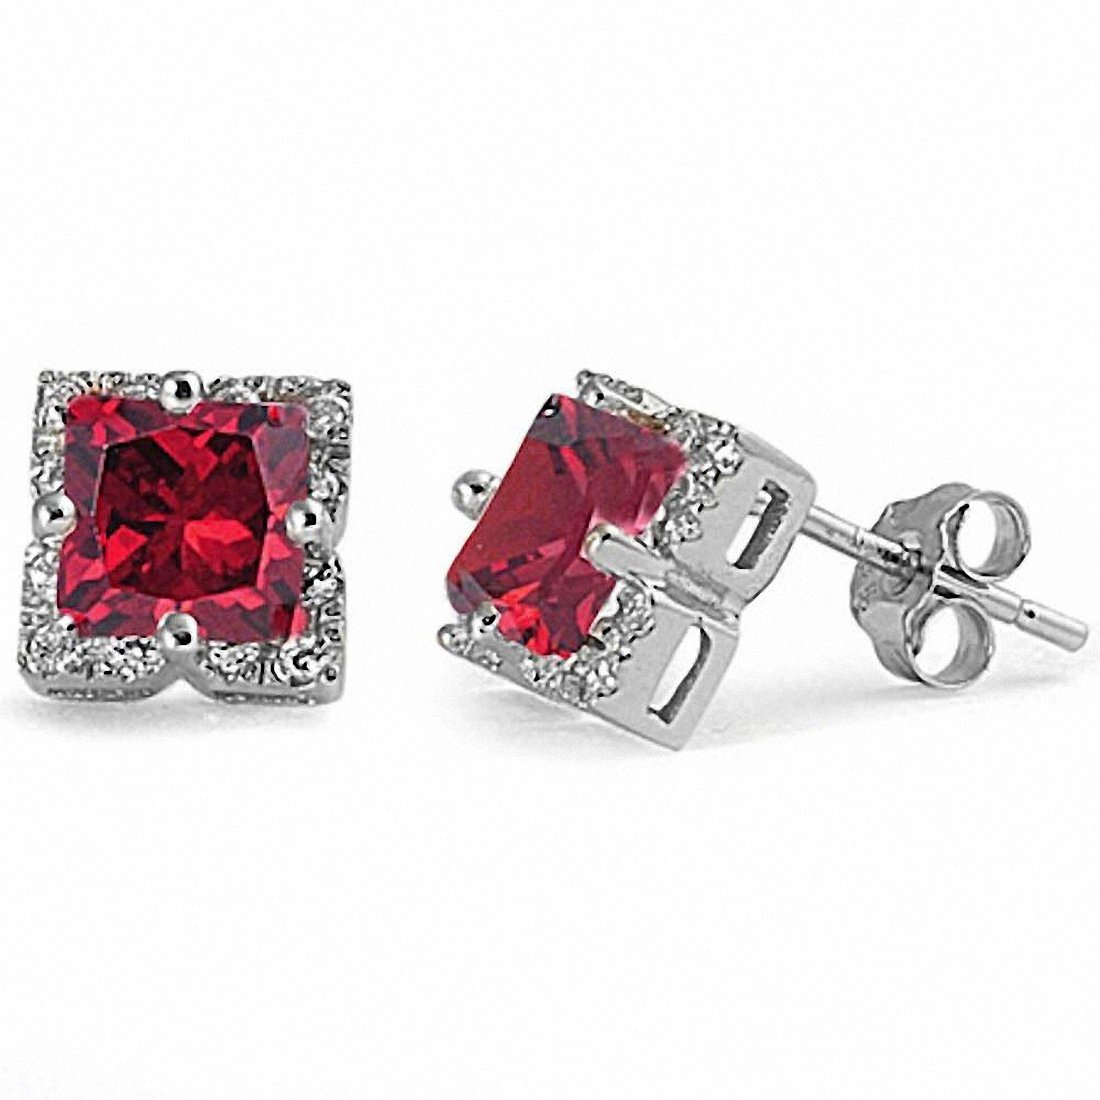 Halo Stud Earrings Princess Cut Simulated Stone Round Cubic Zirconia 925 Sterling Silver Choose Color